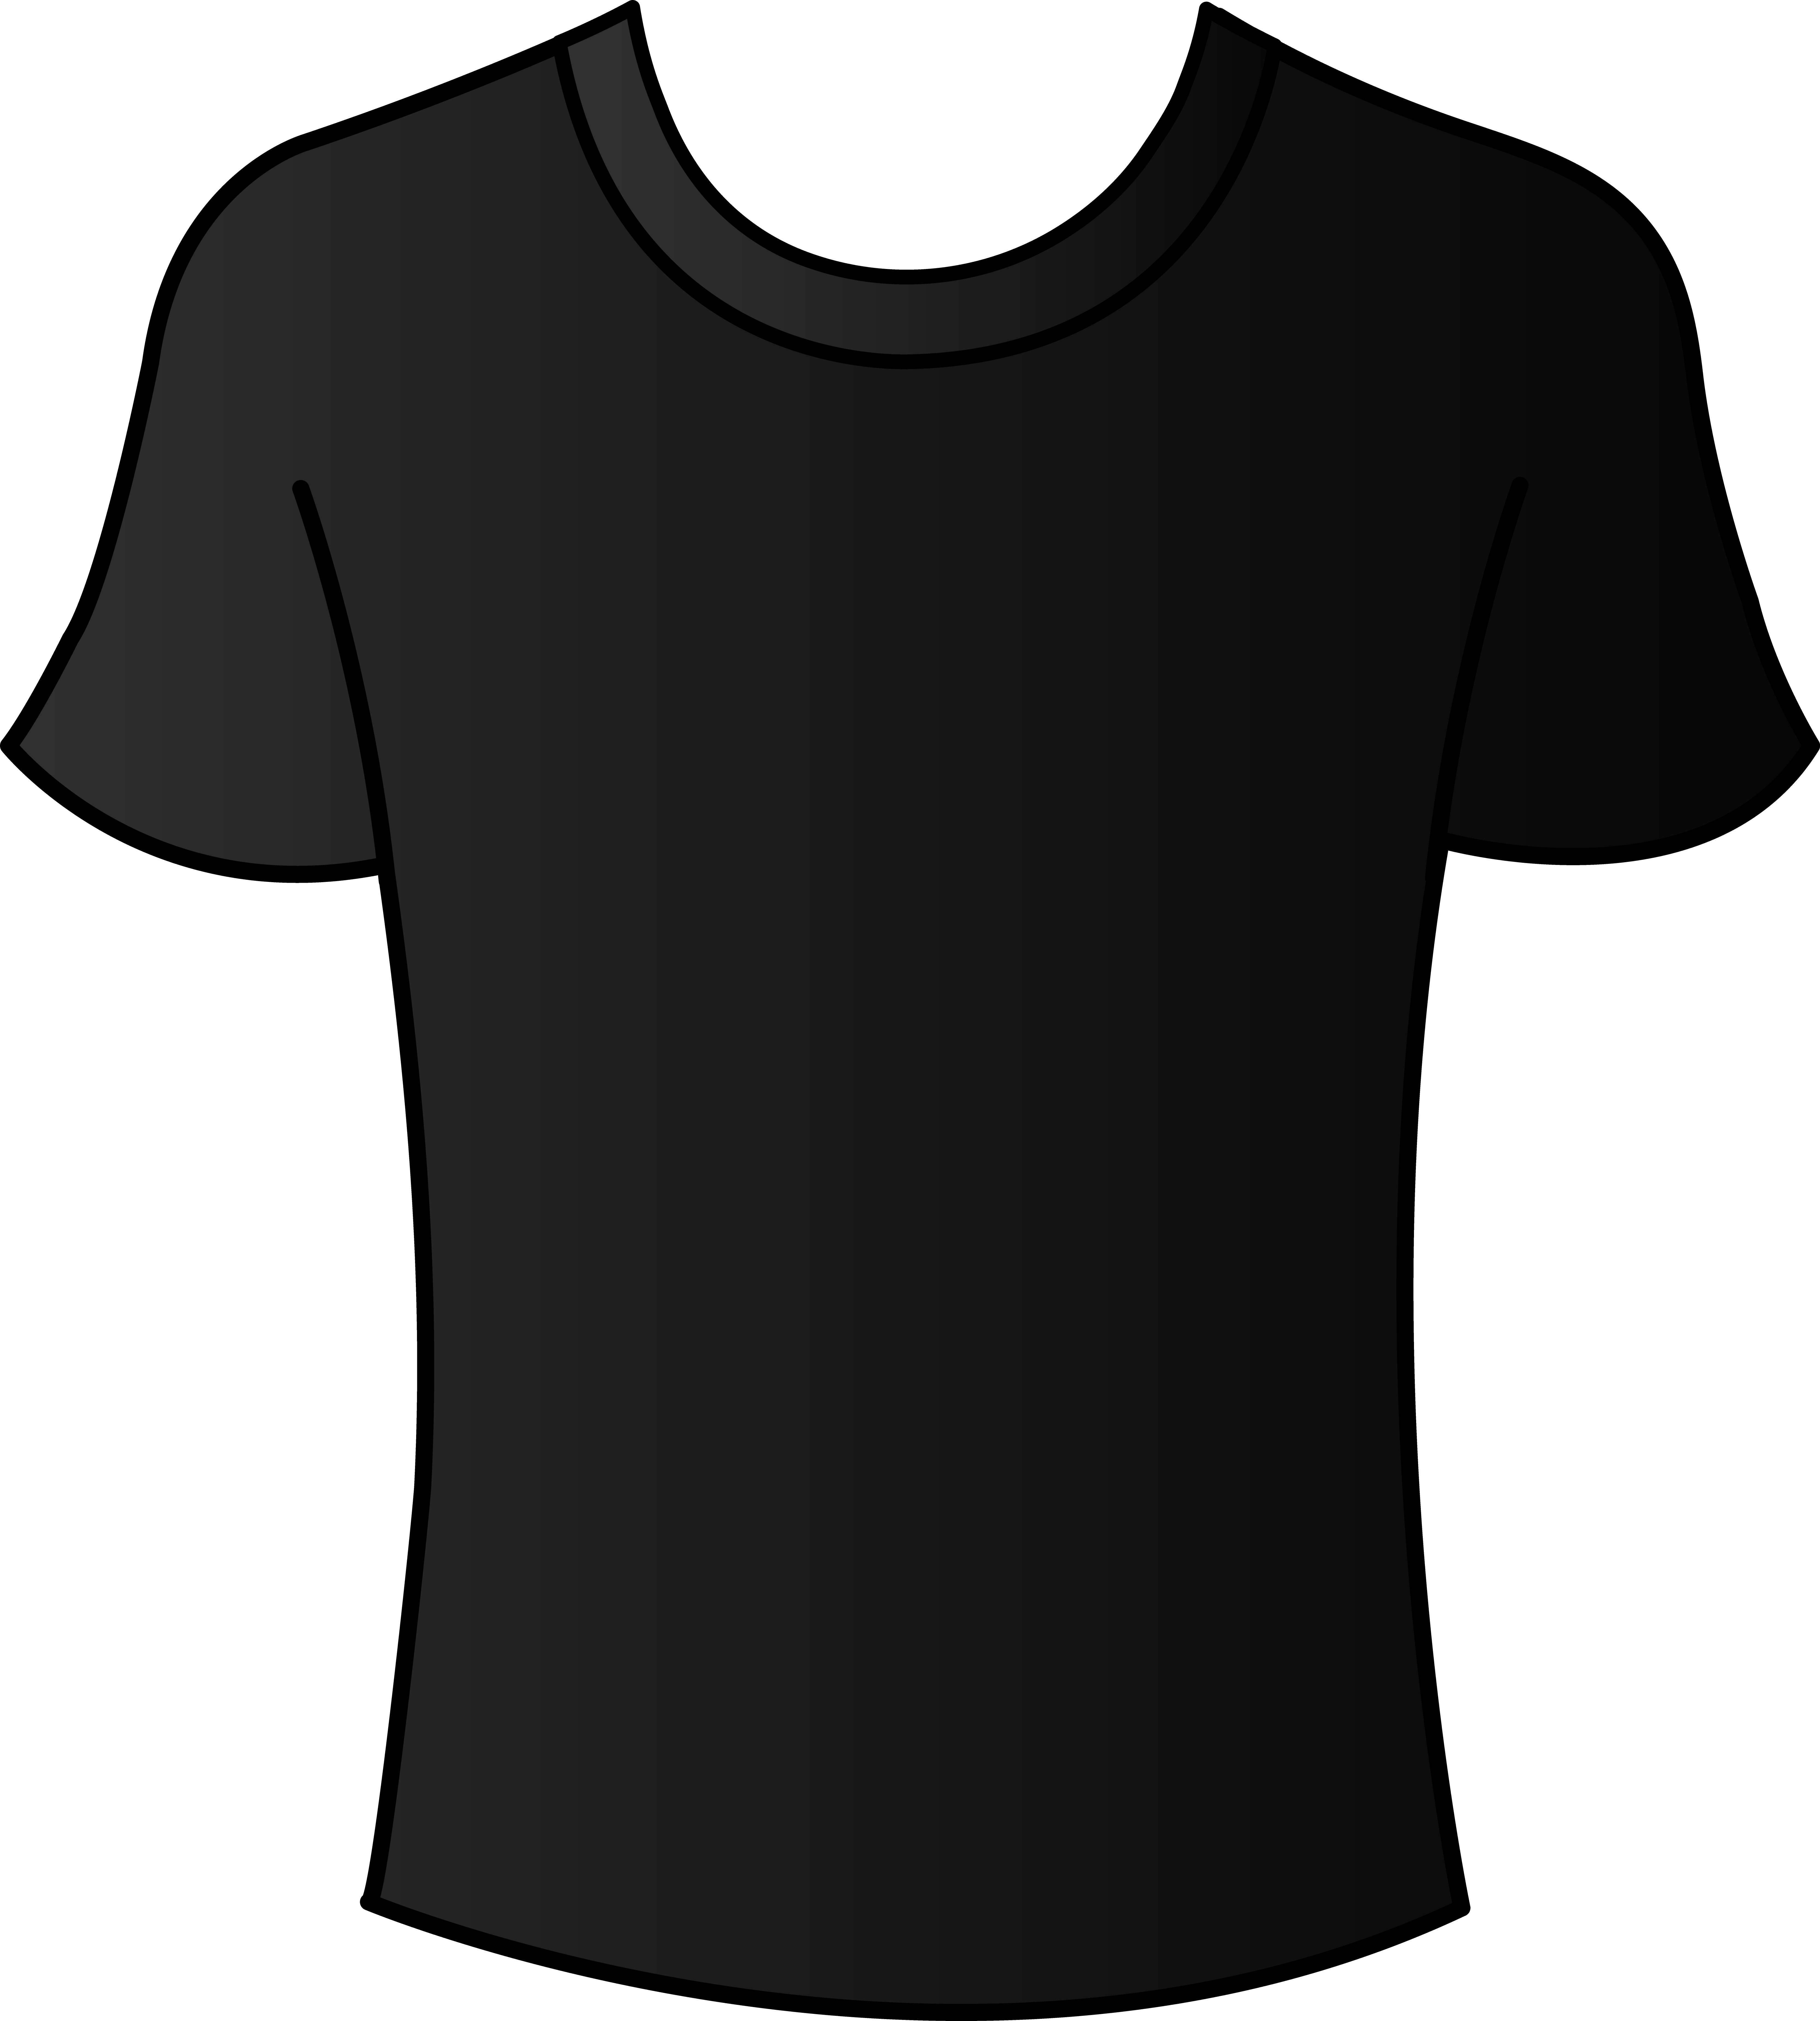 Black T Shirt Template Front And Back Psd Clipart Best